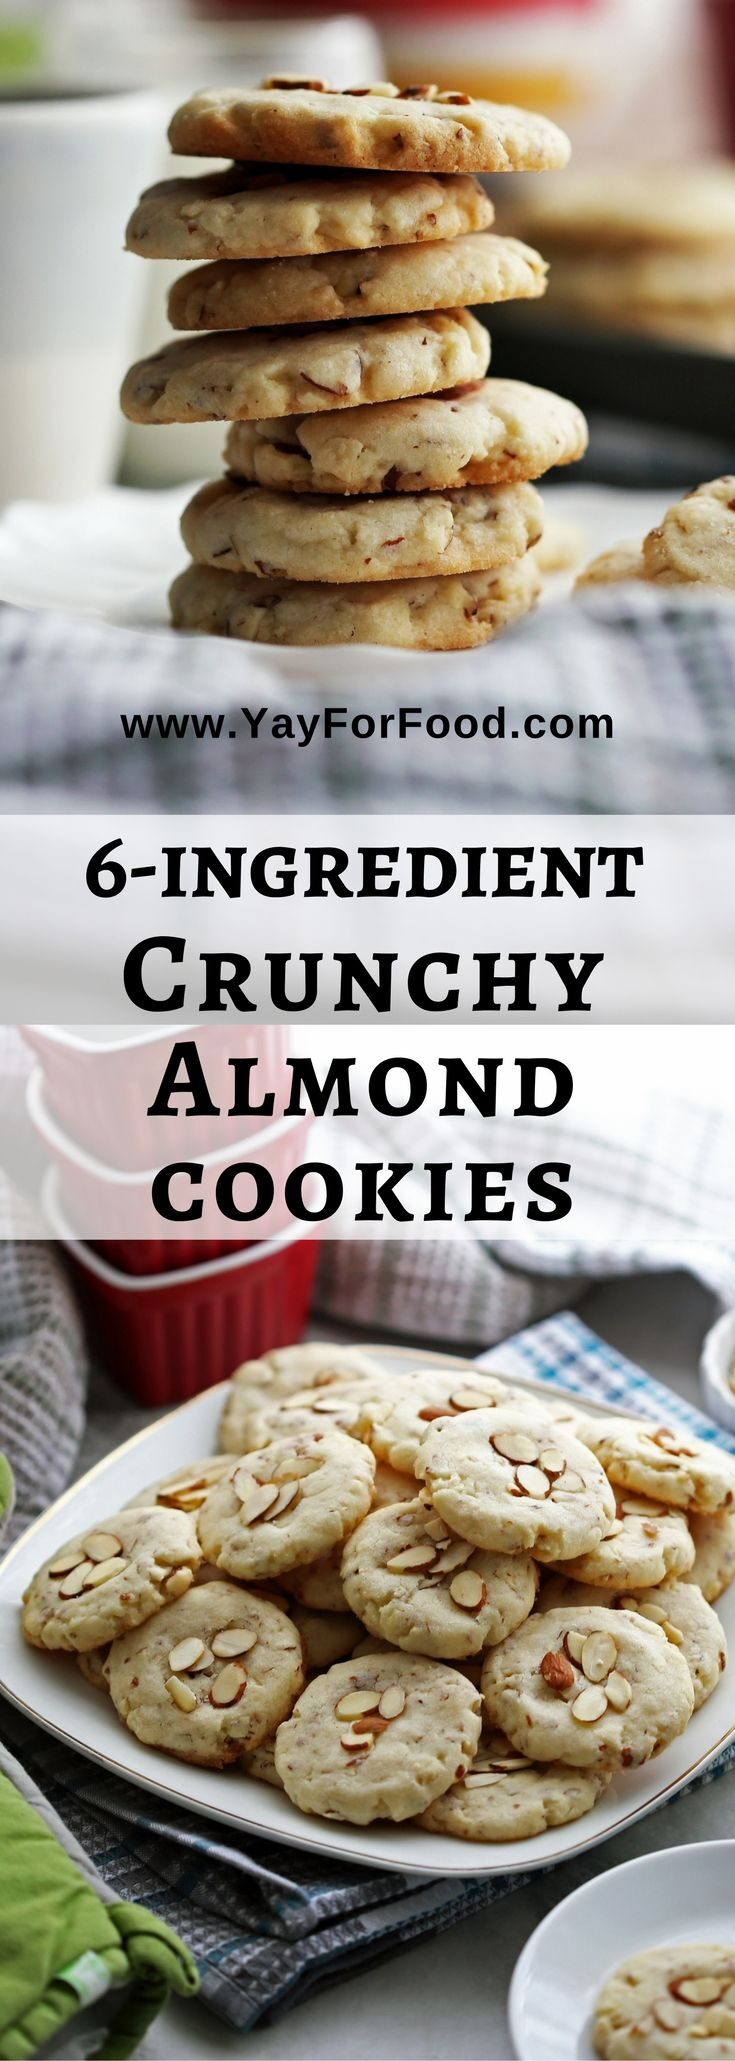 A delicious sweet treat! Try this easy-to-make six ingredient cookie that's full of yummy almond flavour! It's ready in 30 minutes too.